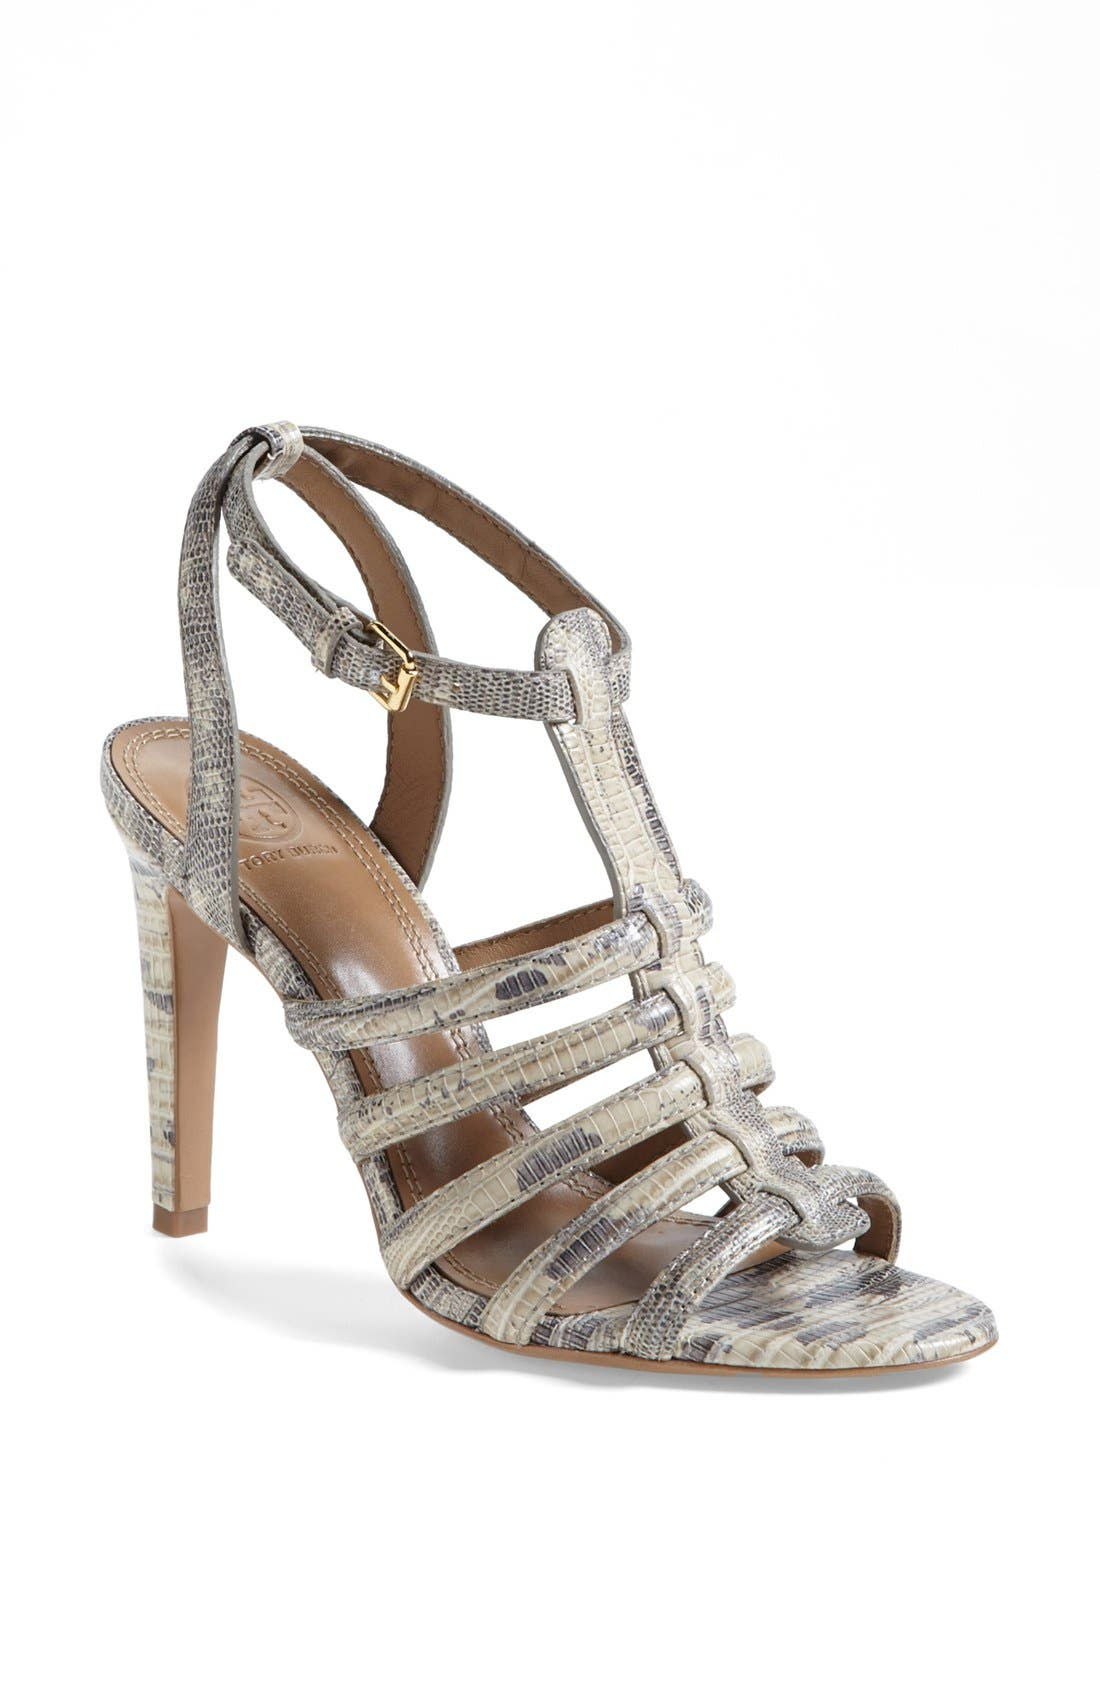 Alternate Image 1 Selected - Tory Burch 'Charlene' Sandal